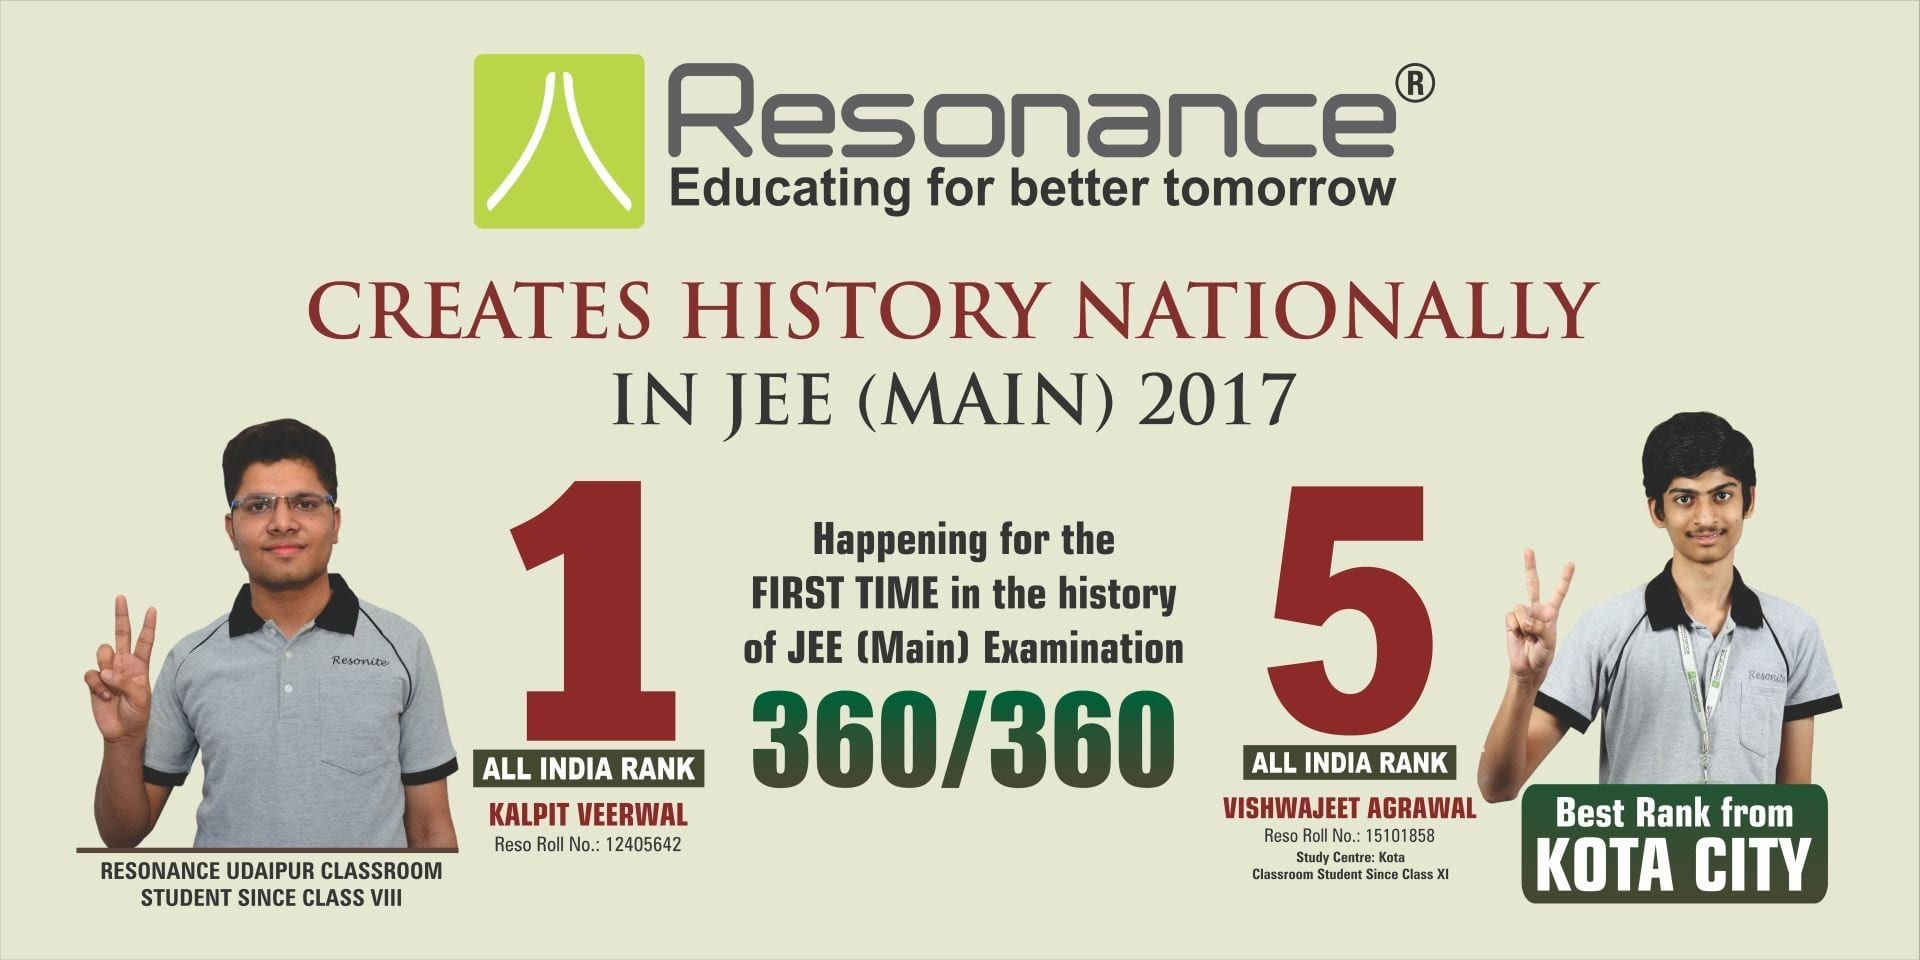 Resonance strikes a big in the JEE Main 2017 results